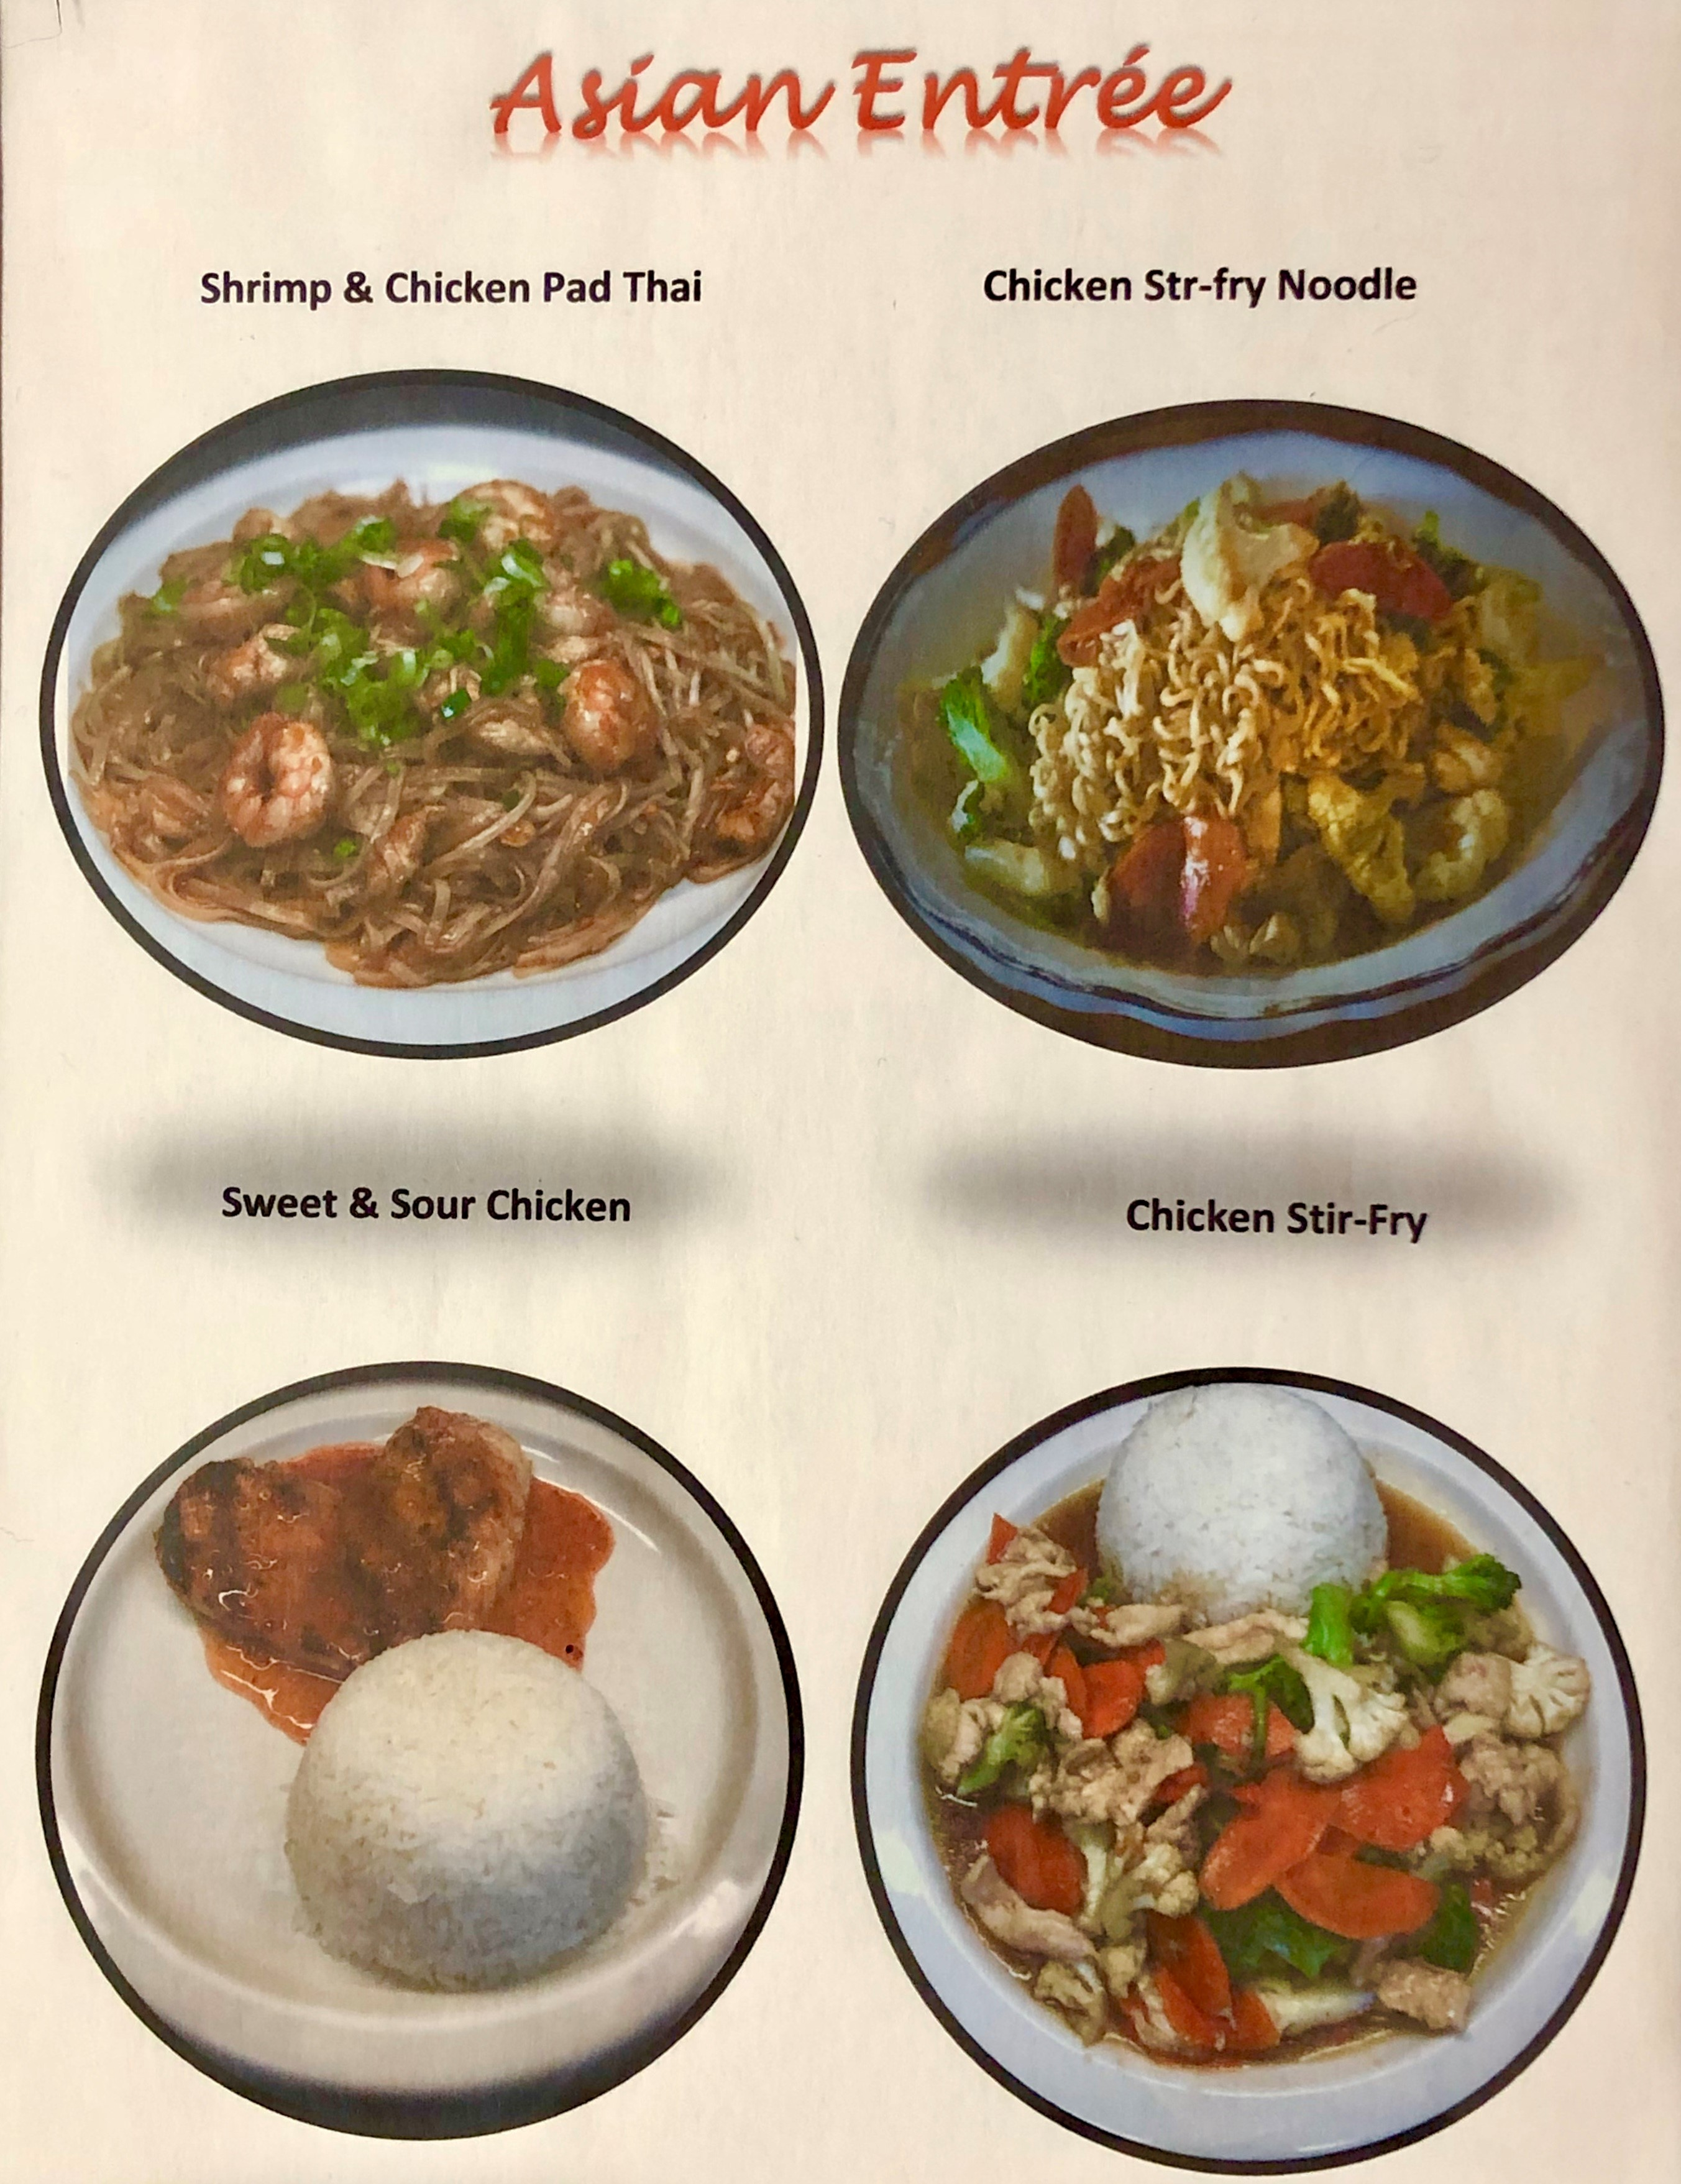 Asian Entree images